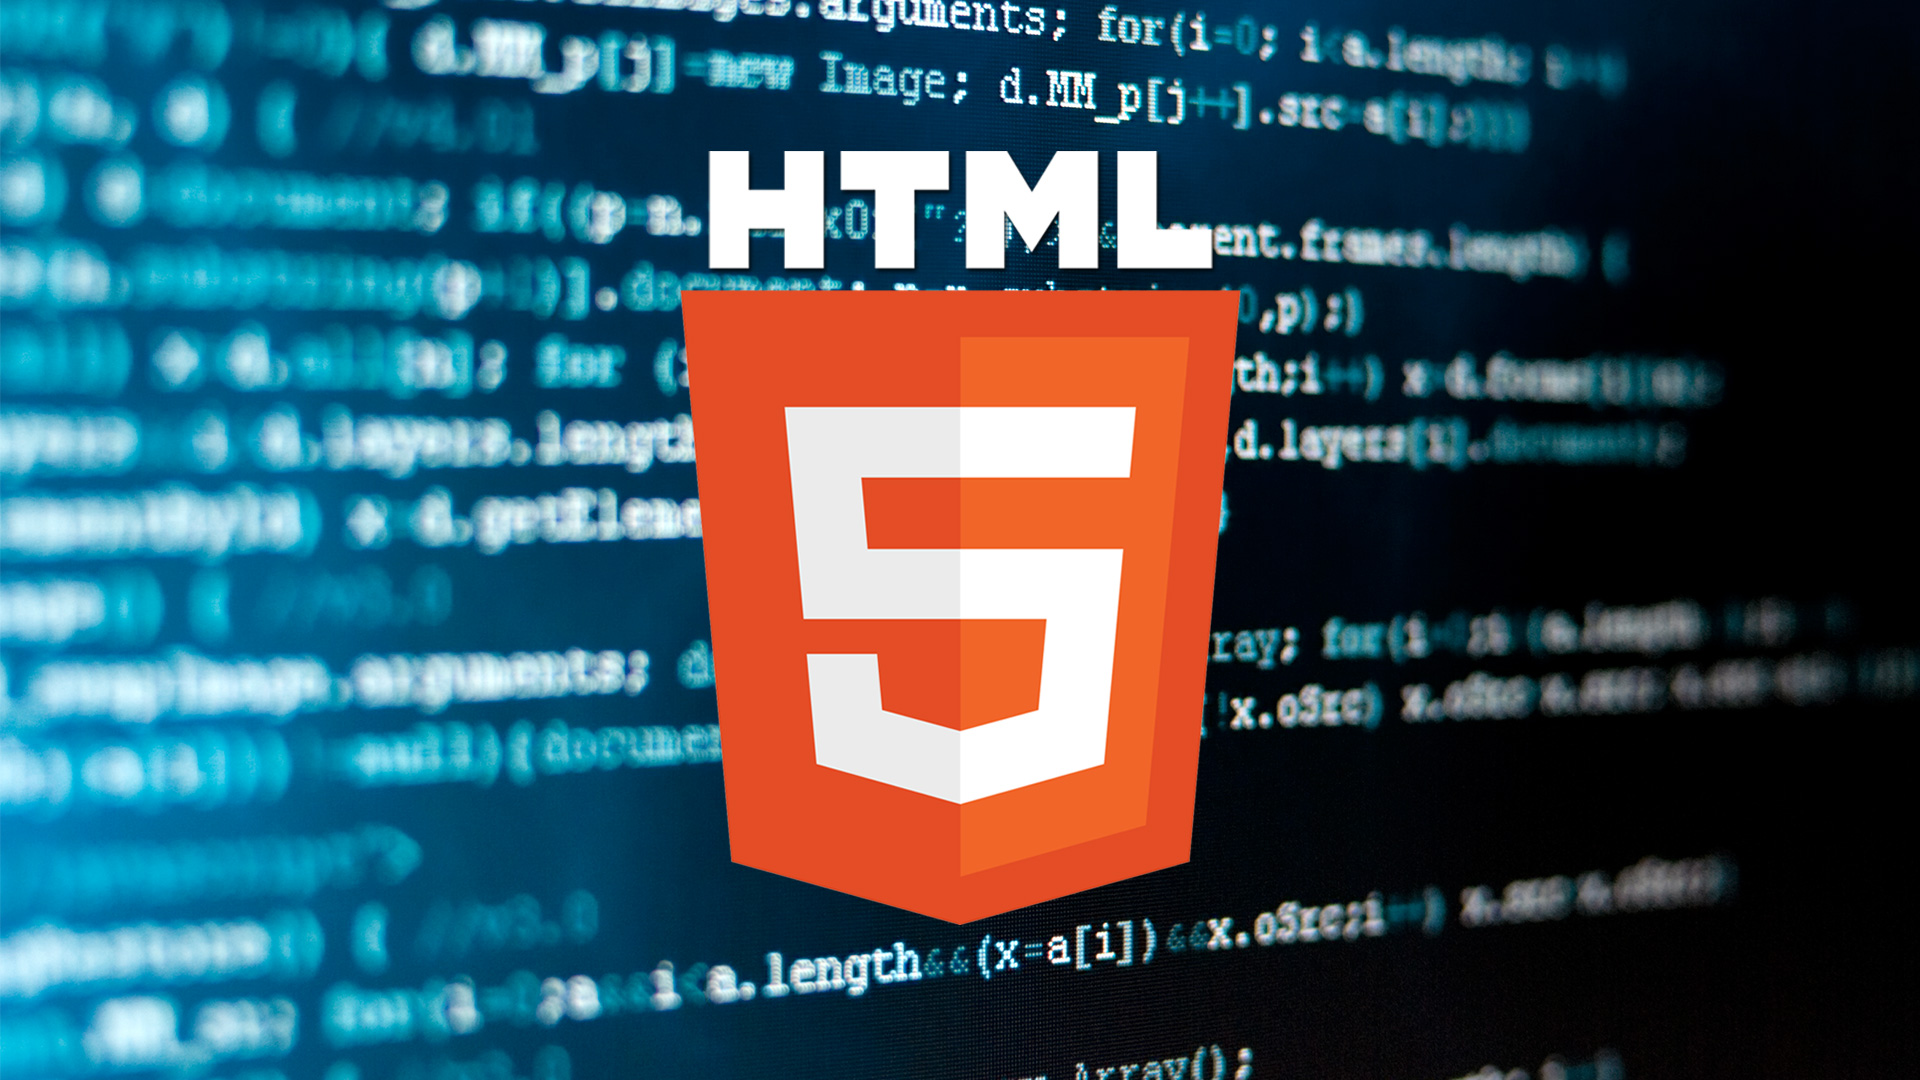 Come fare il layout semantico con HTML5? 1